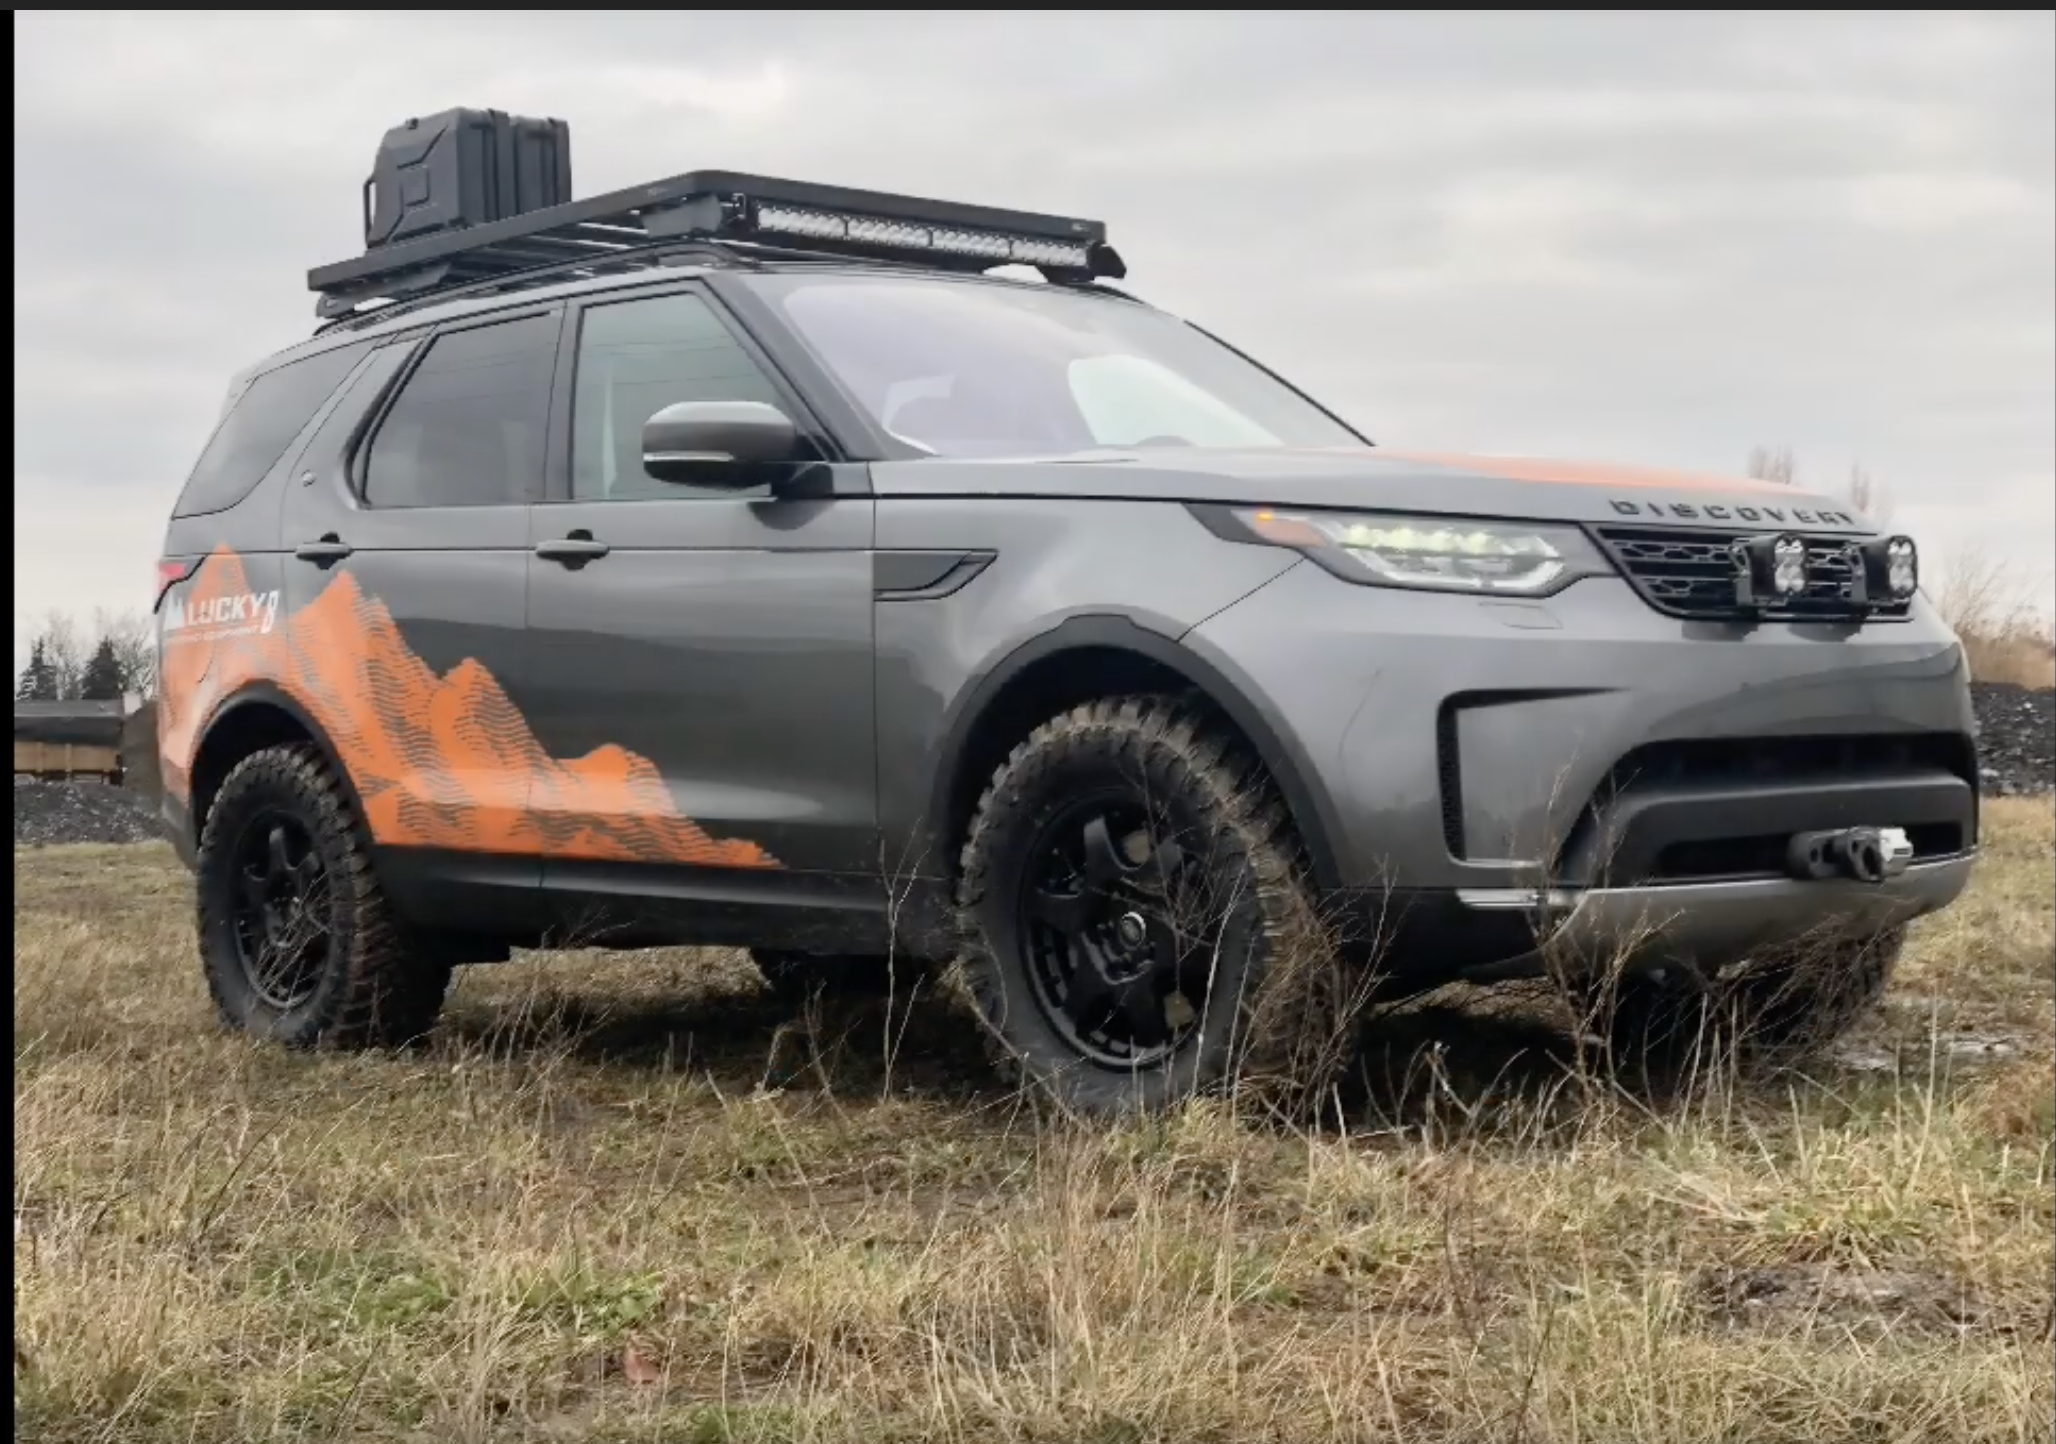 Lucky 8 Auto >> Lucky 8 Discovery 5 On 33 Tyres Discovery 5 Land Rover